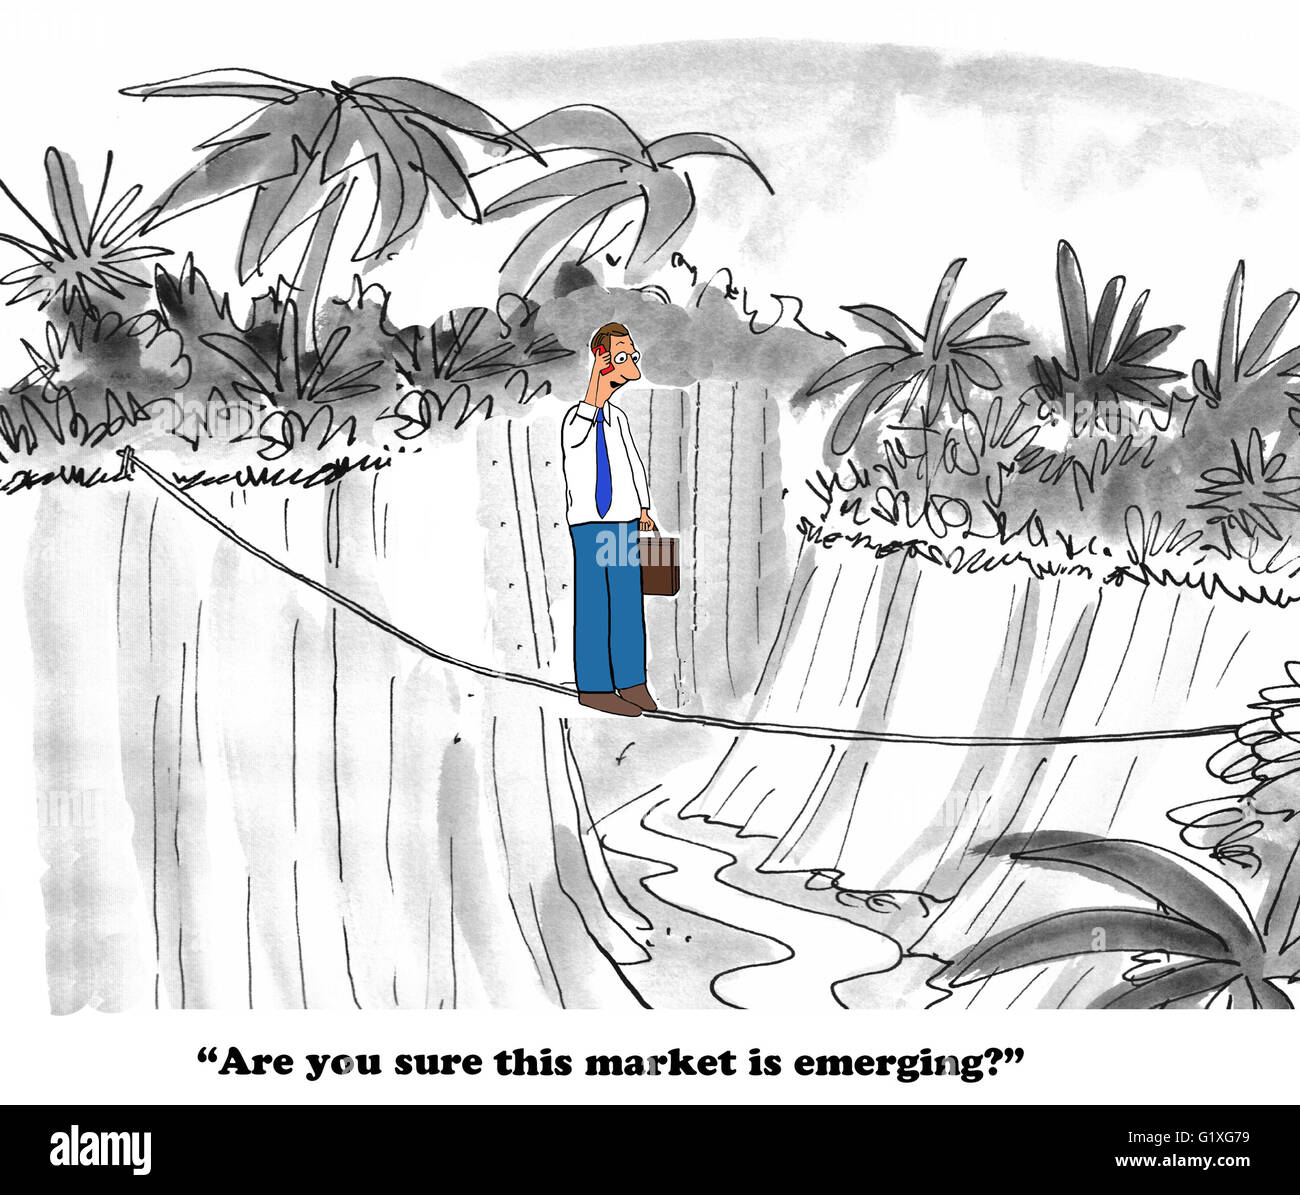 Business cartoon about a market that does not appear to be emerging. Stock Photo